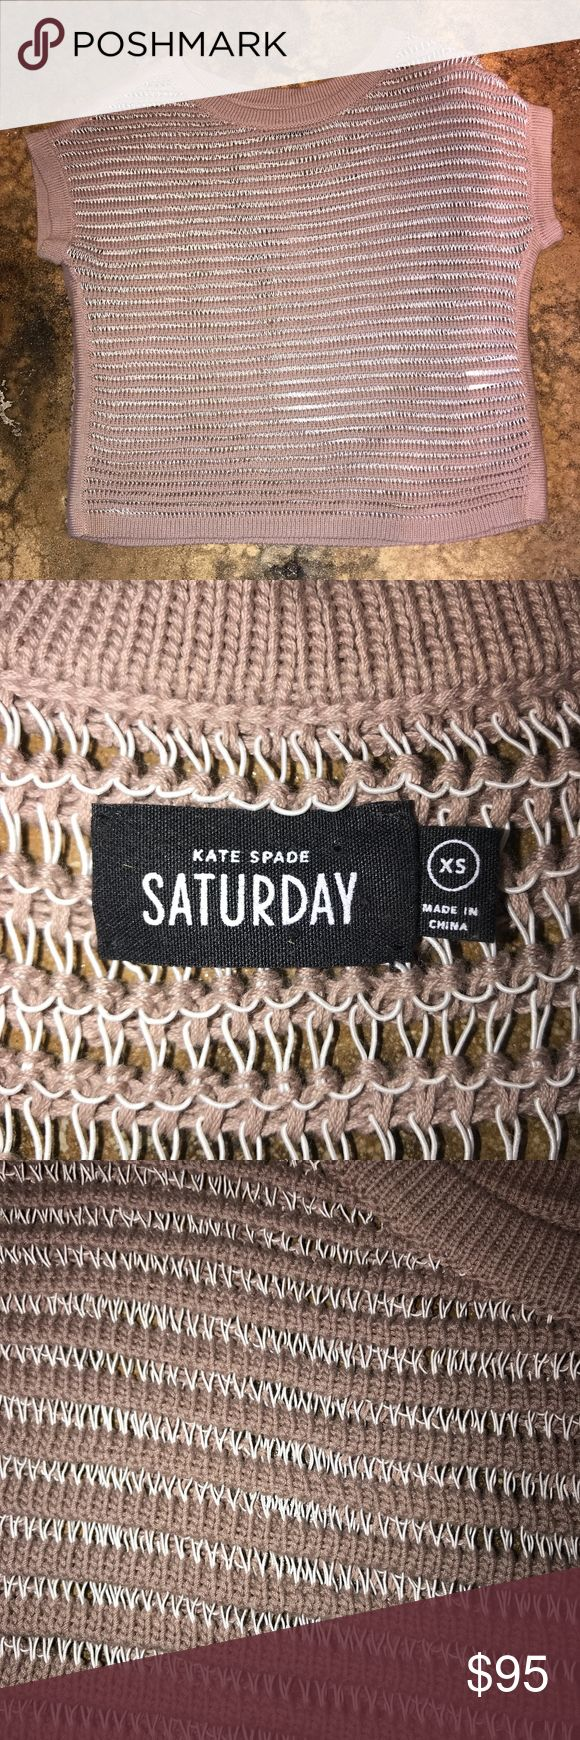 Kate Spade SATURDAY loose cabel knit sweater Kate Sapde SATURDAY loose cabel knit sweater. Absolutely gorgeous taupe and white knit sweater. Excellent condition! Retail was $375!!! Kate Spade Sweaters